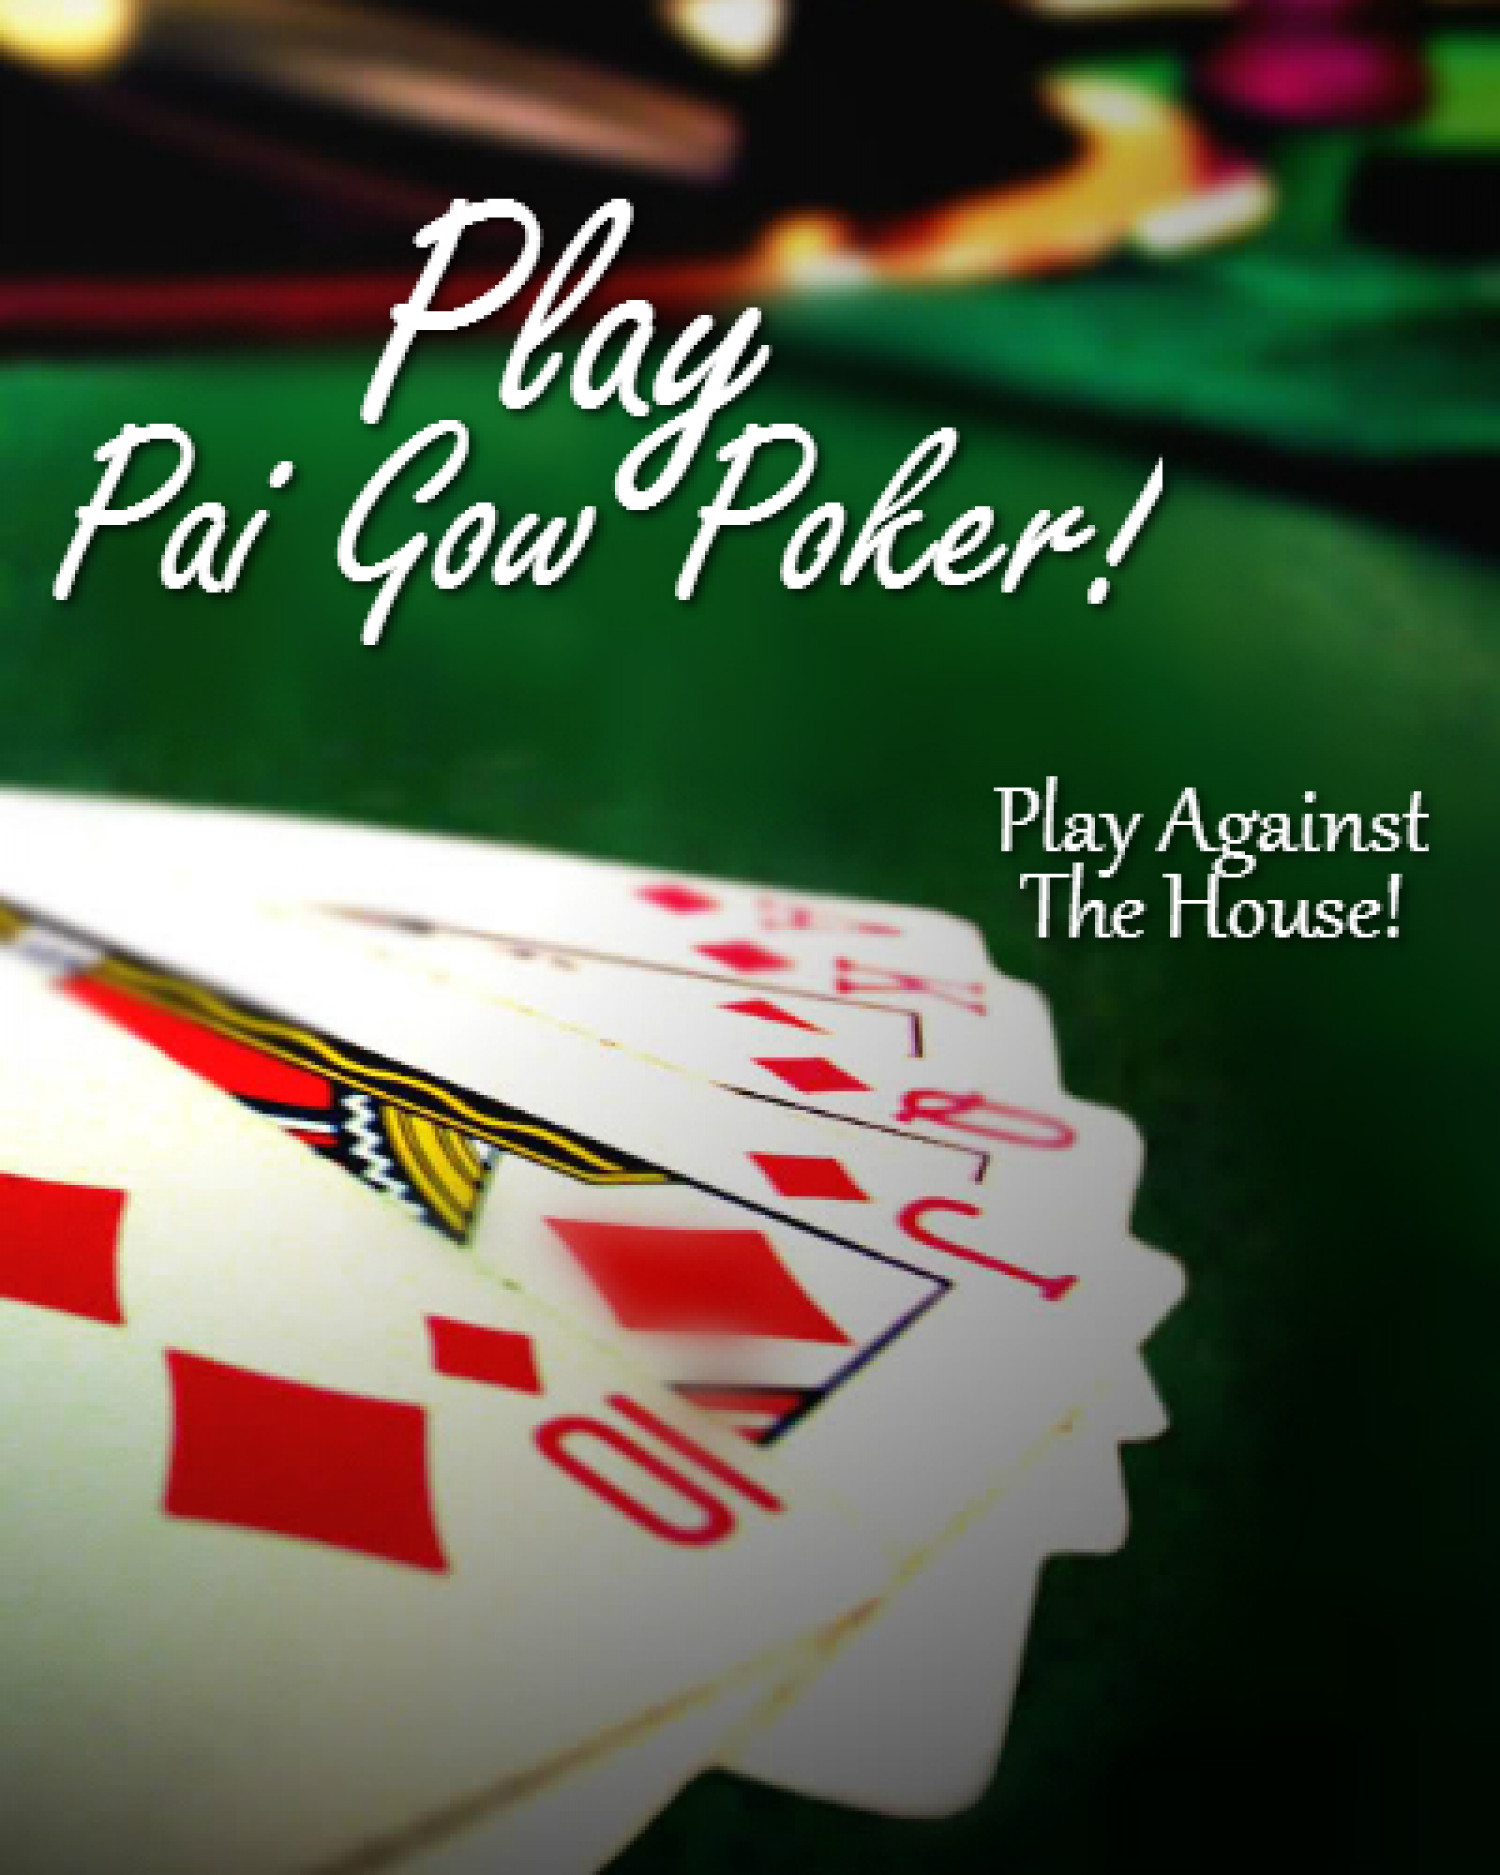 Play Against the House Play Pai Gow Poker! Infographic